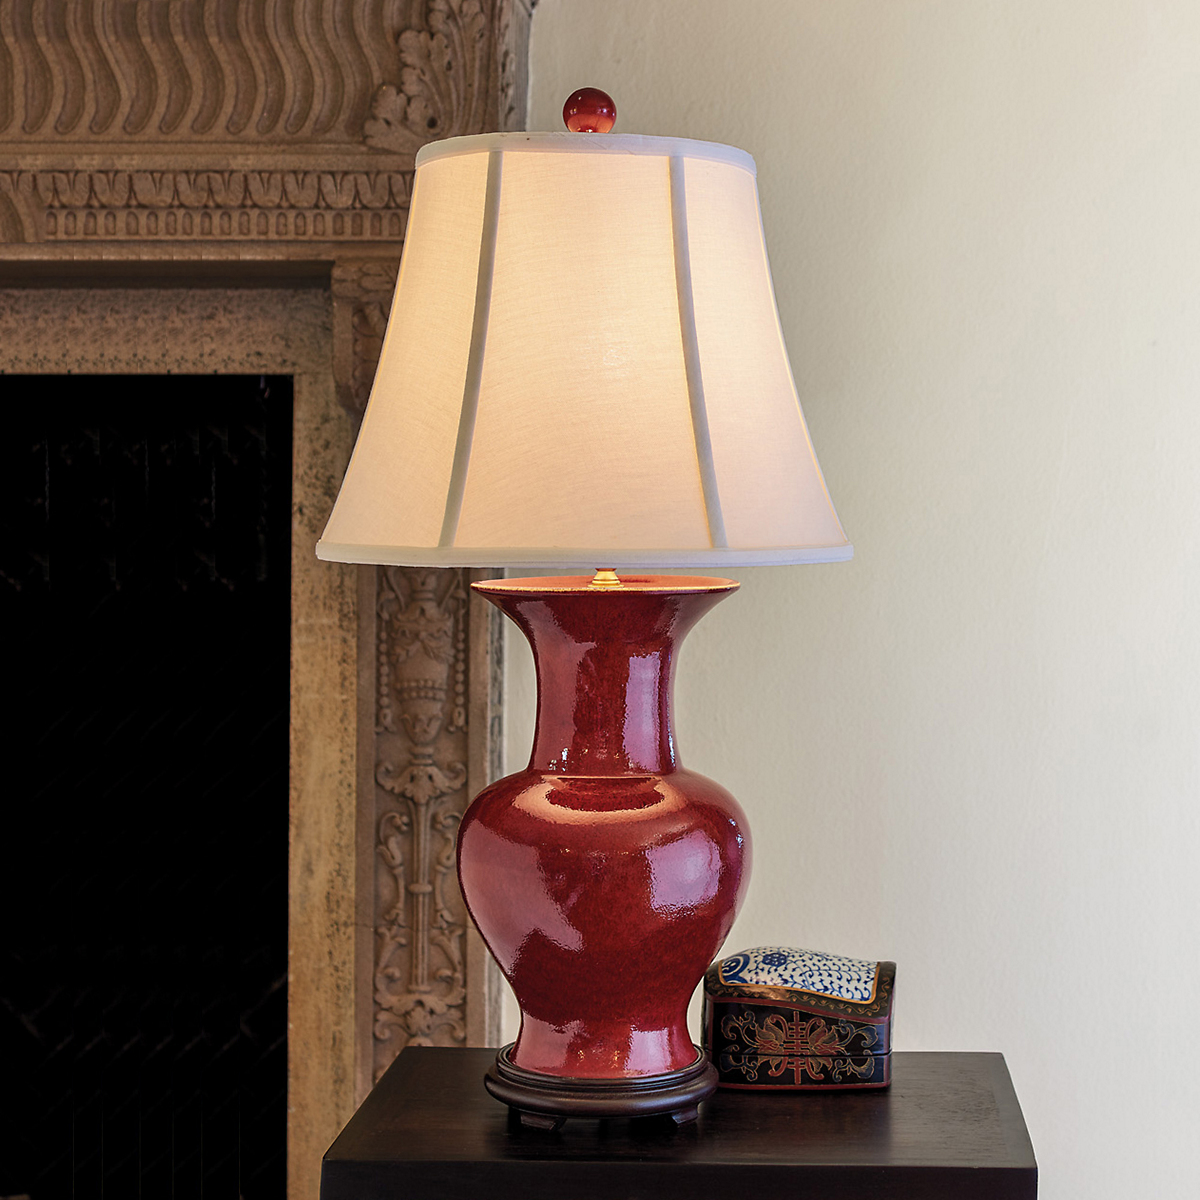 Oxblood Jar Lamp